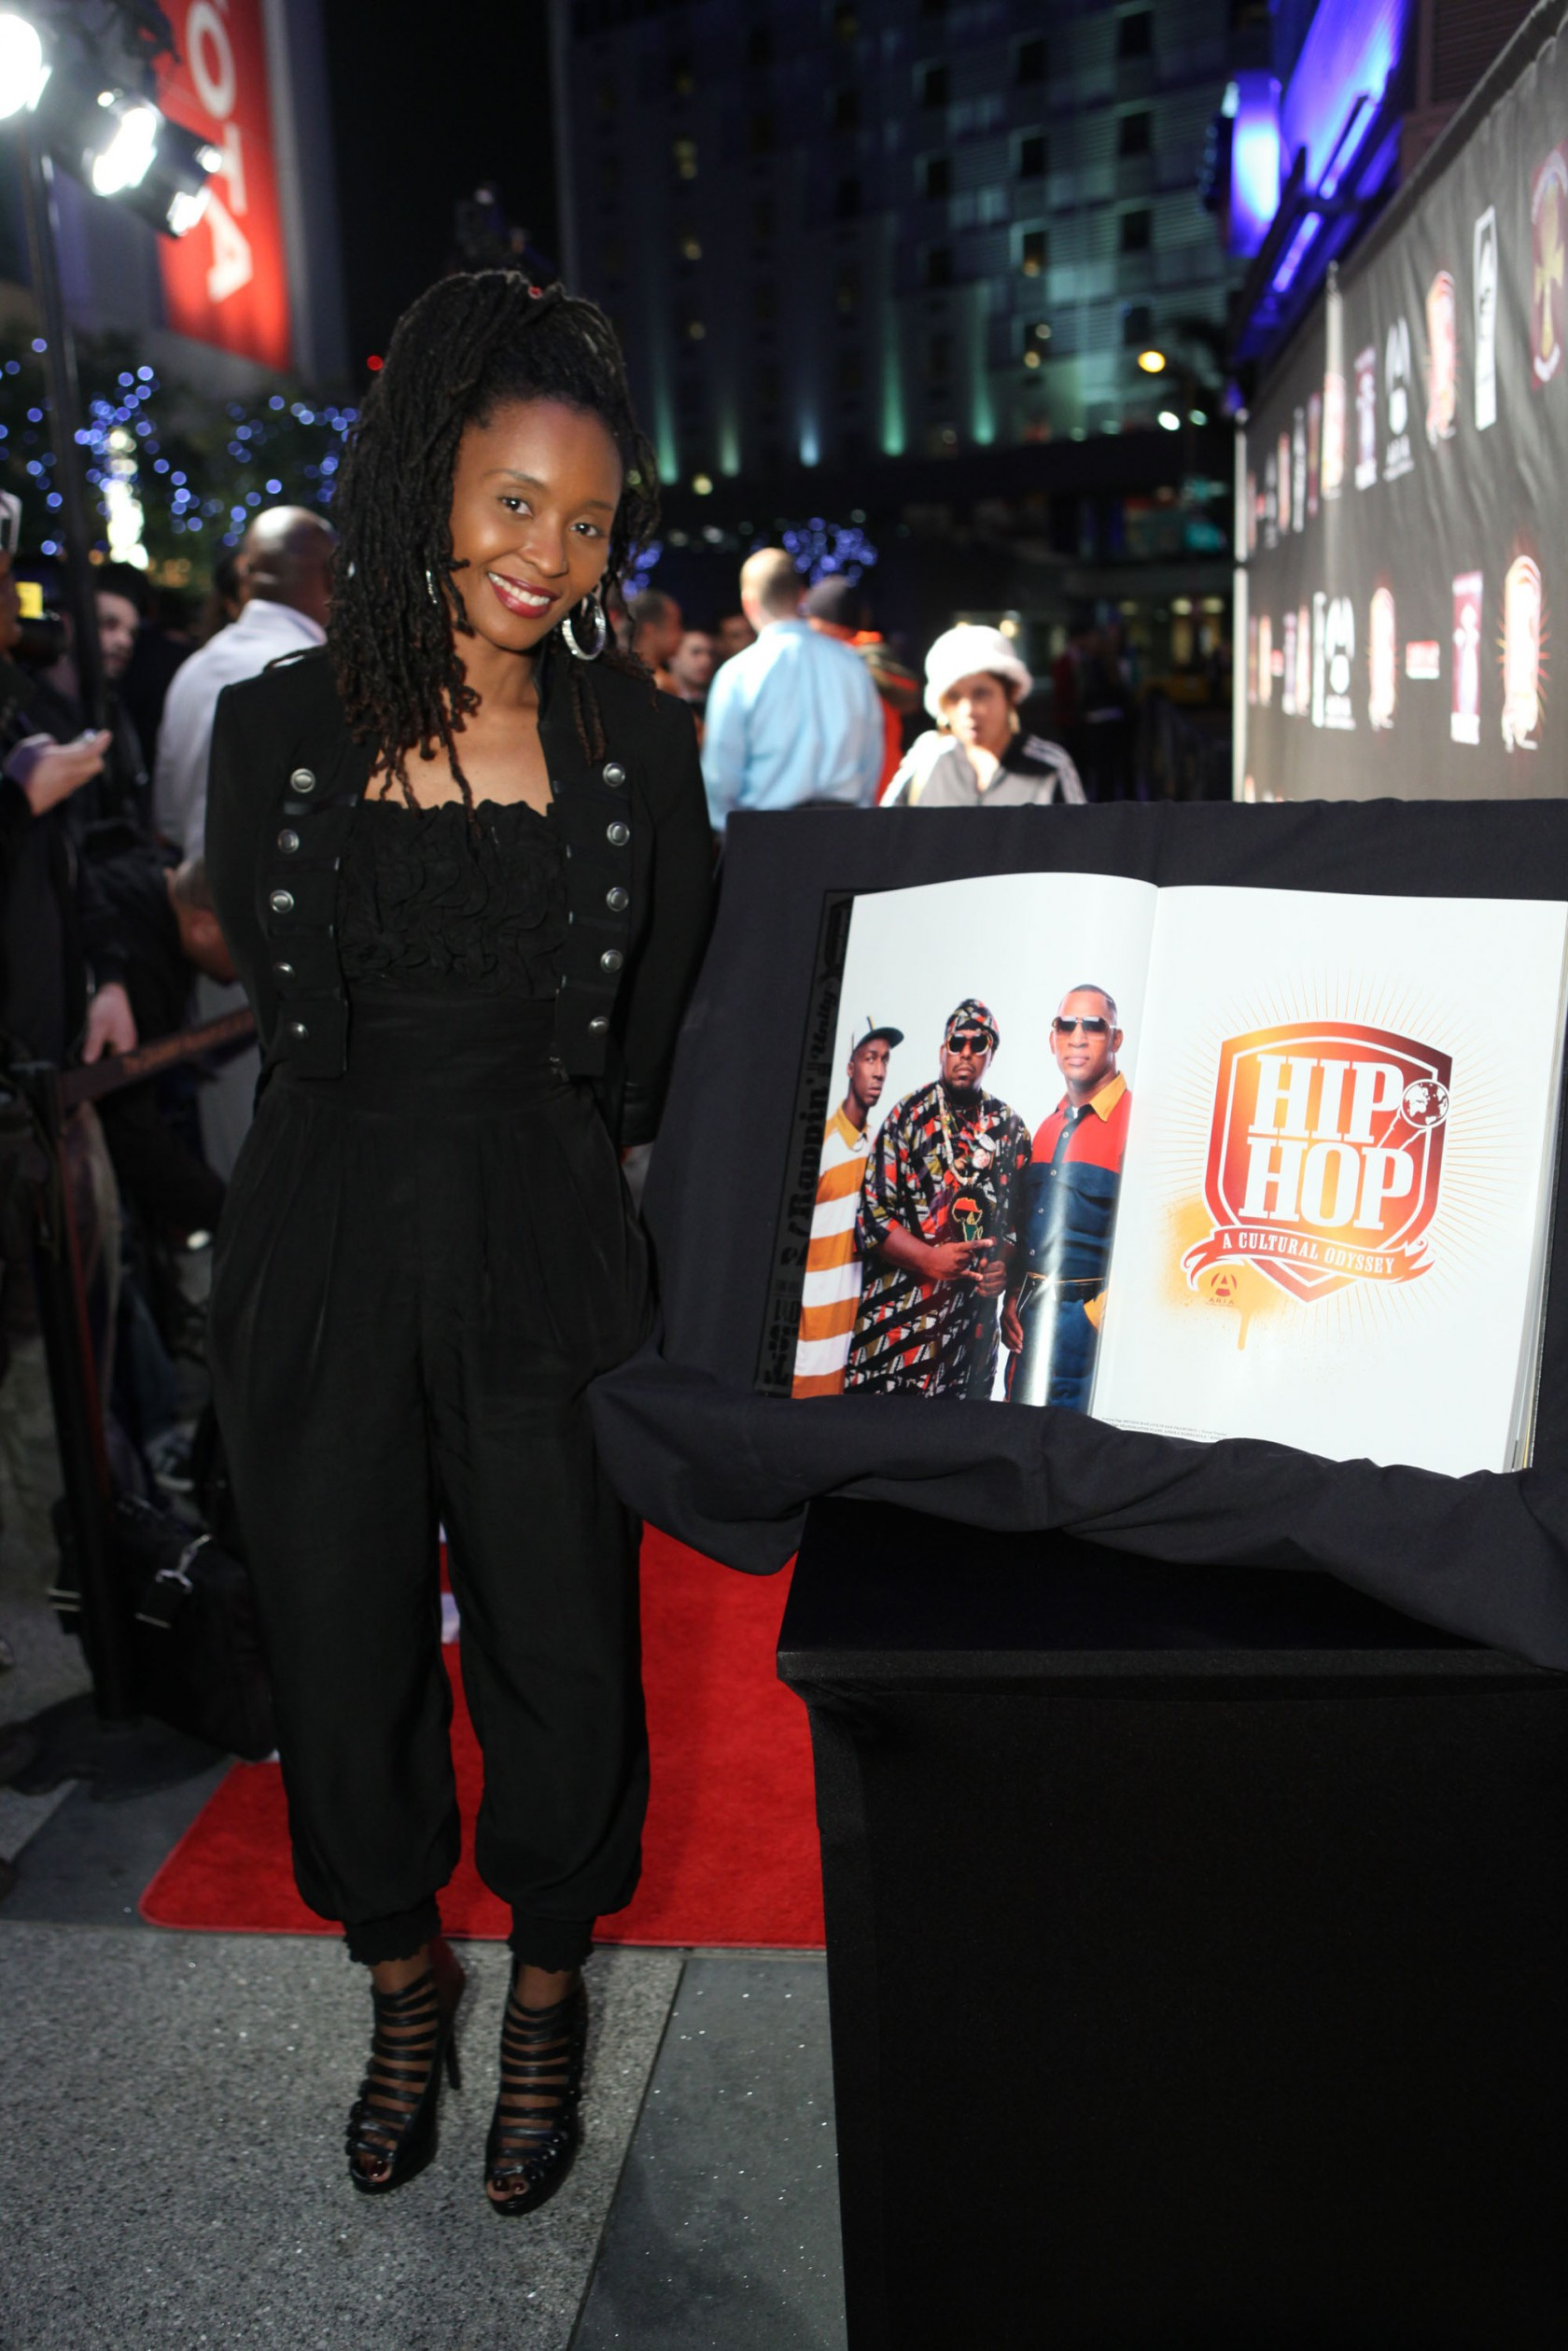 Book Launch For 'Hip Hop: A Cultural Odyssey'